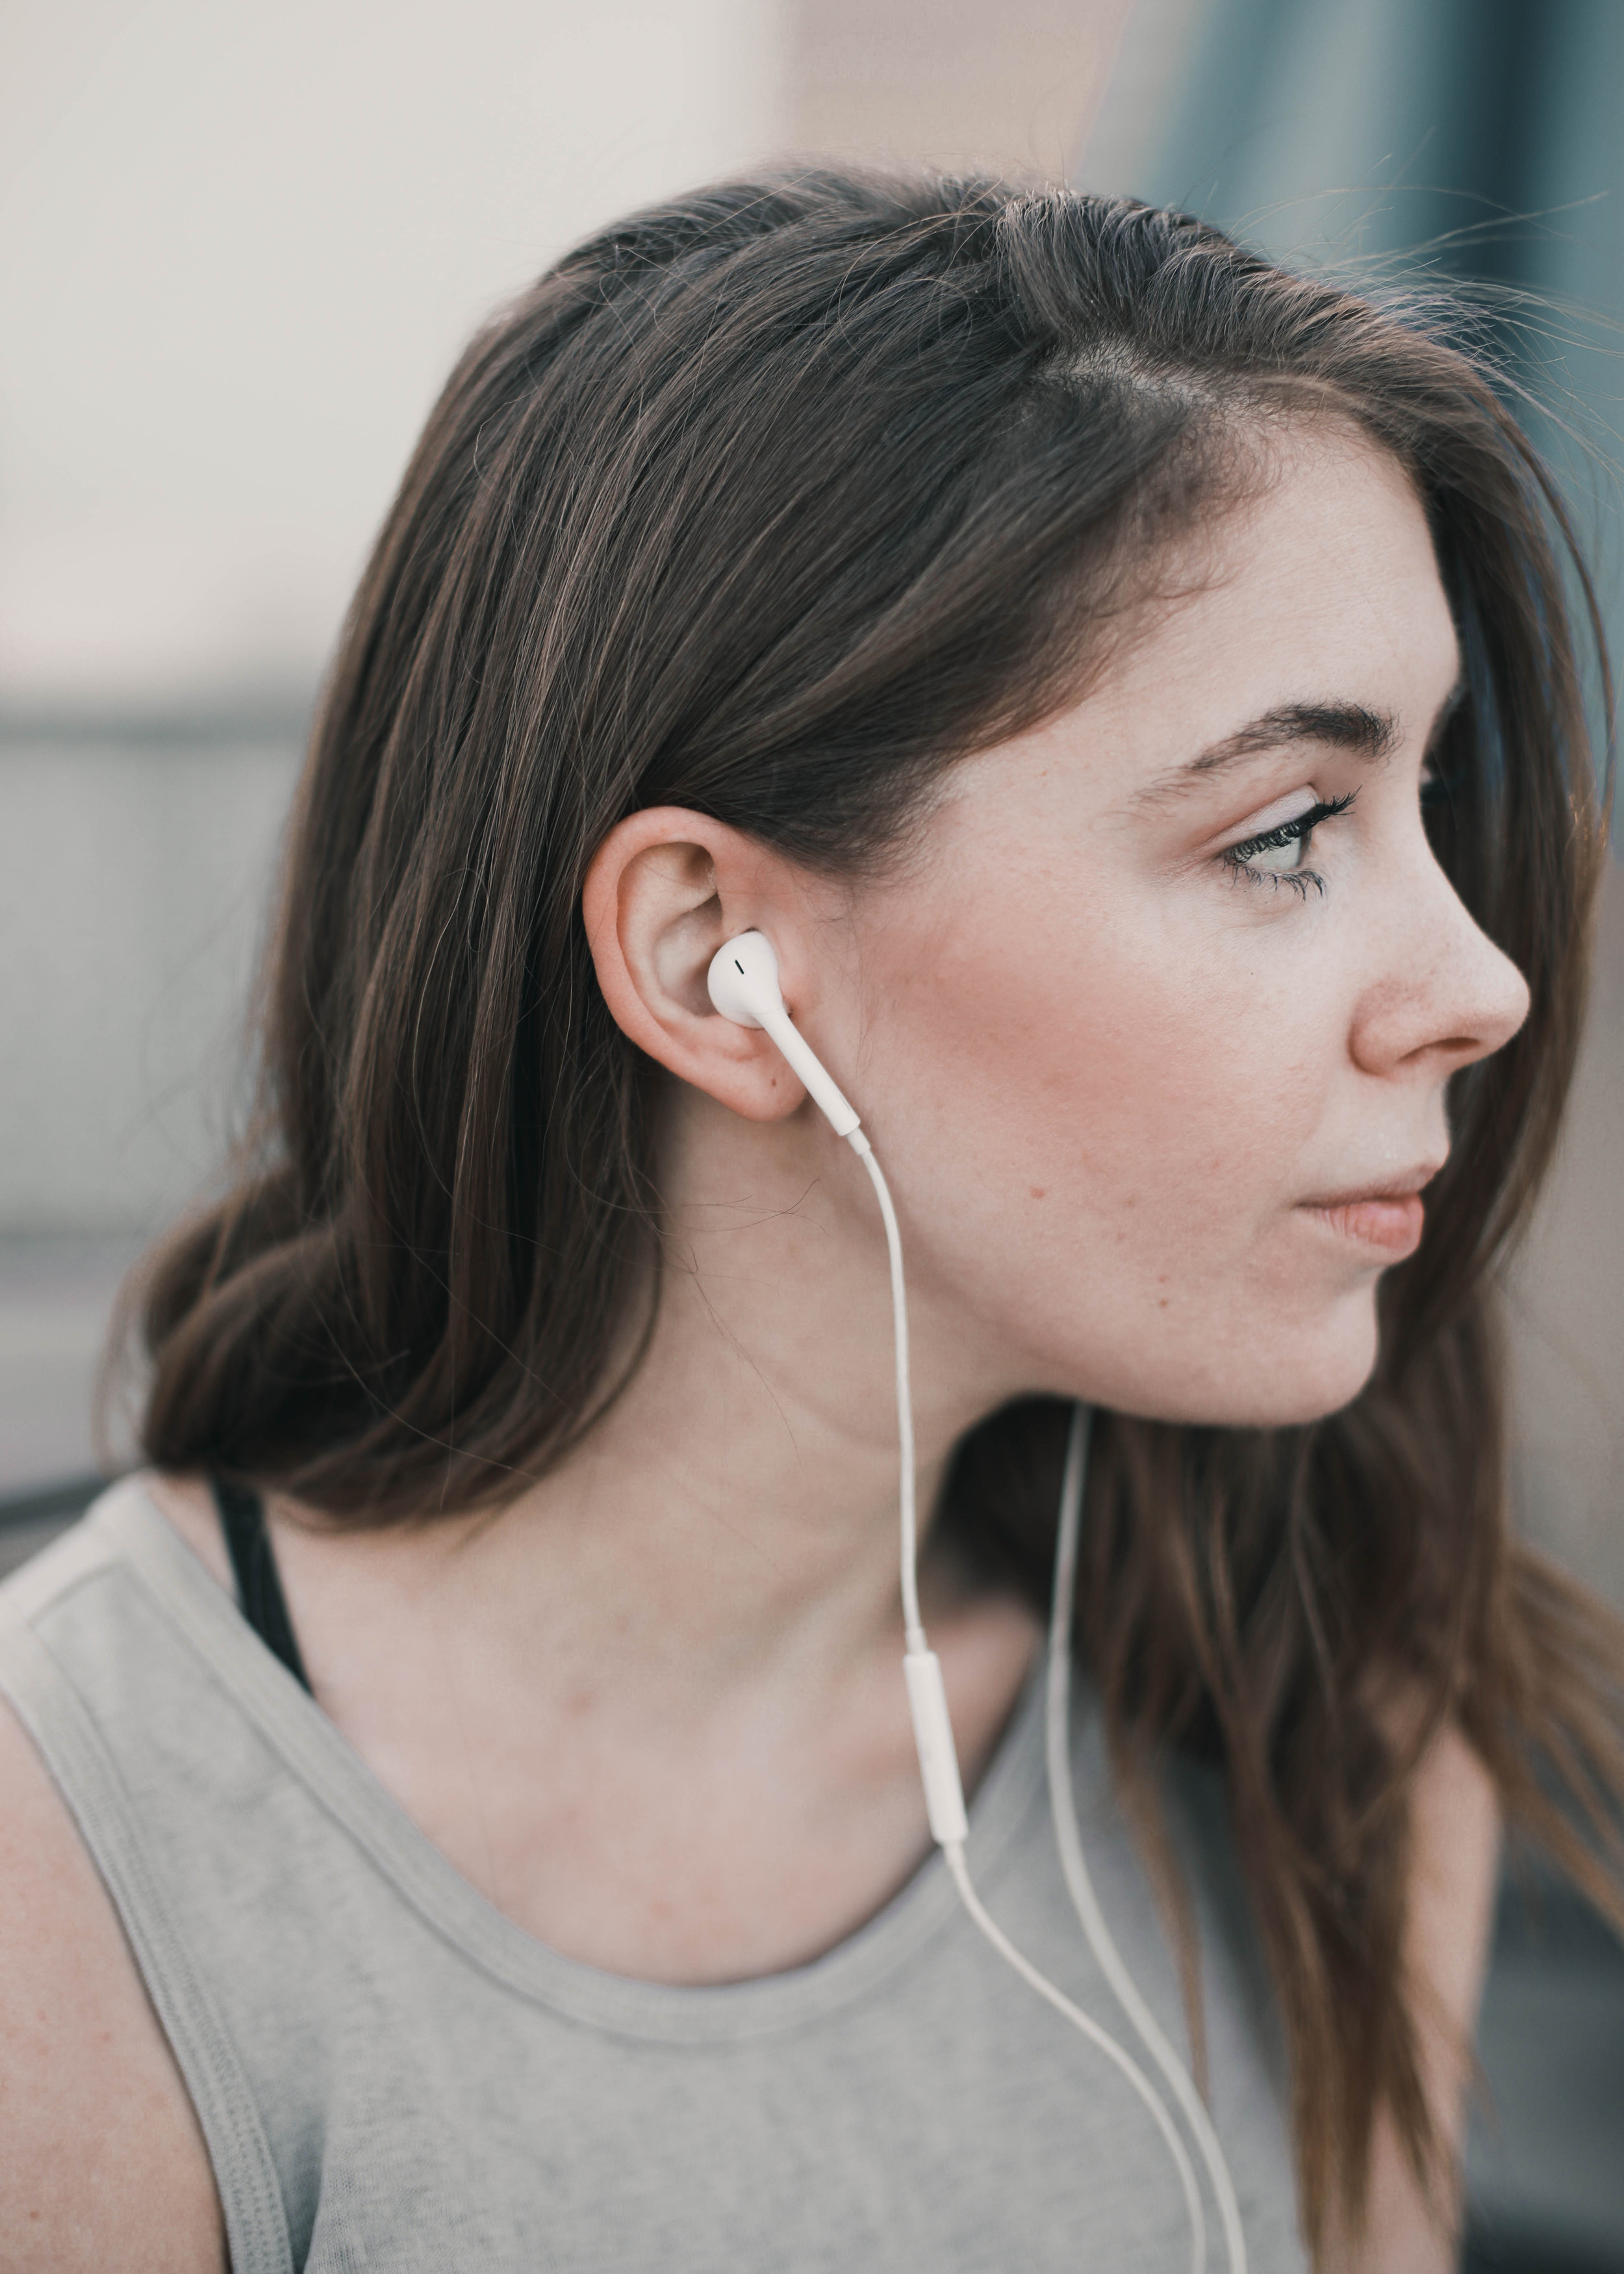 headphones - This one probably seems like a given to you guys, but I thought I would throw it in there anyway. Especially in the world of apple where you need different kinds of headphones for different products, it's worth giving an extra thought to. Make sure you have headphones that work with your phone and your laptop that way you don't have to buy the overpriced airport headphones (I've definitely make that mistake before).Get your headphones here!